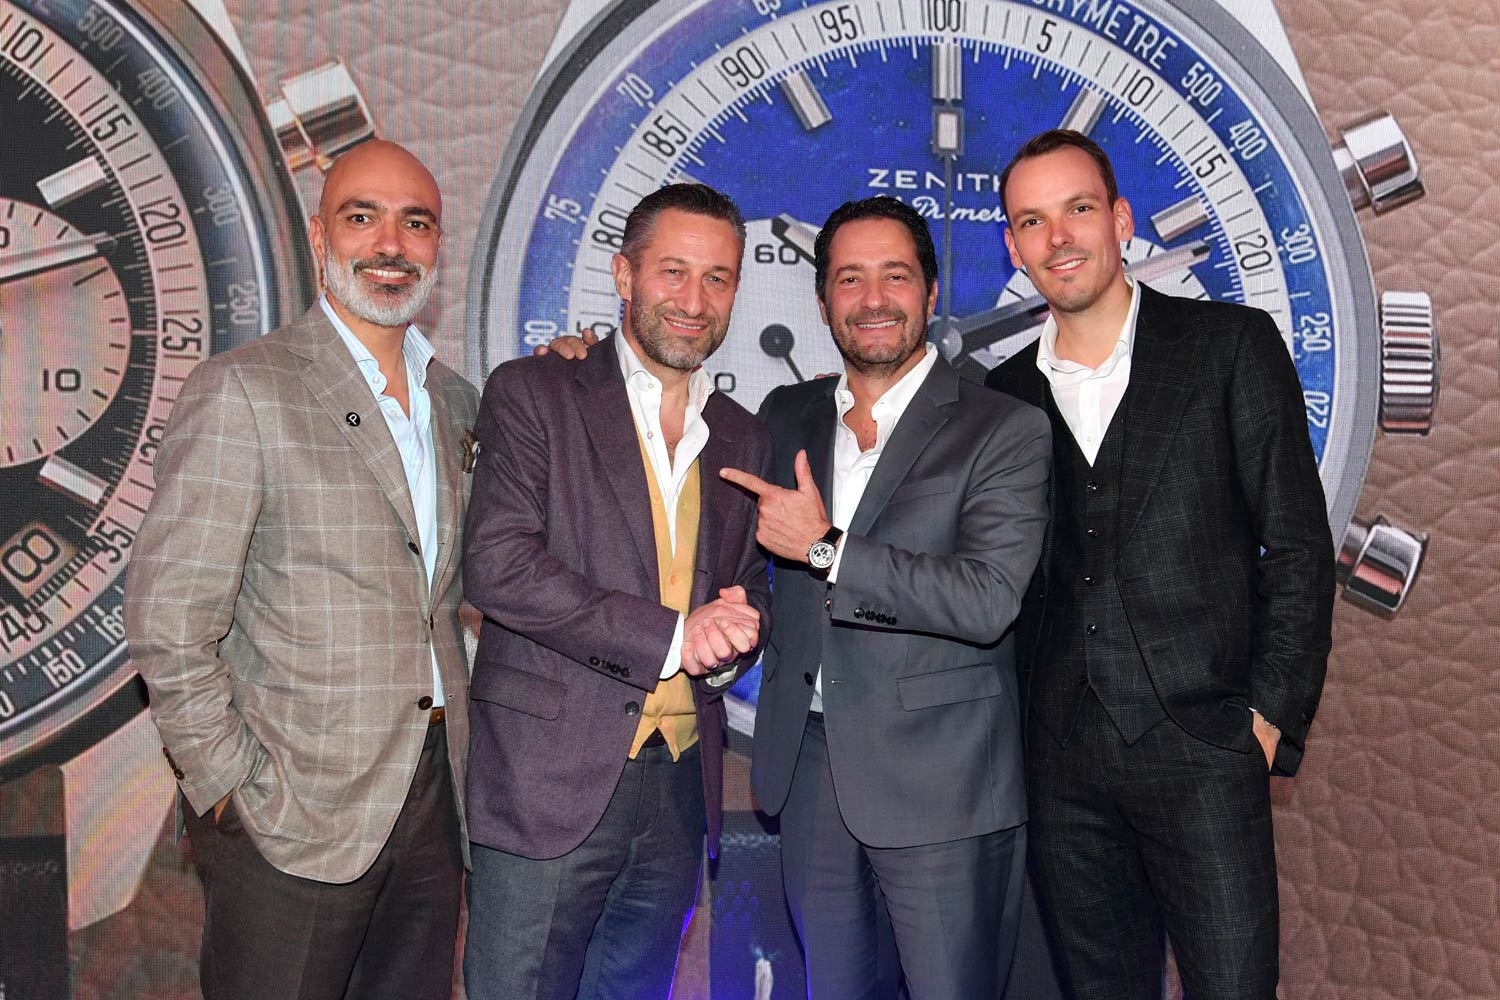 (From left) Alex Ghotbi, Aurel Bacs, Zenith CEO Julien Tornare and Romain Marietta, Zenith Product Chief